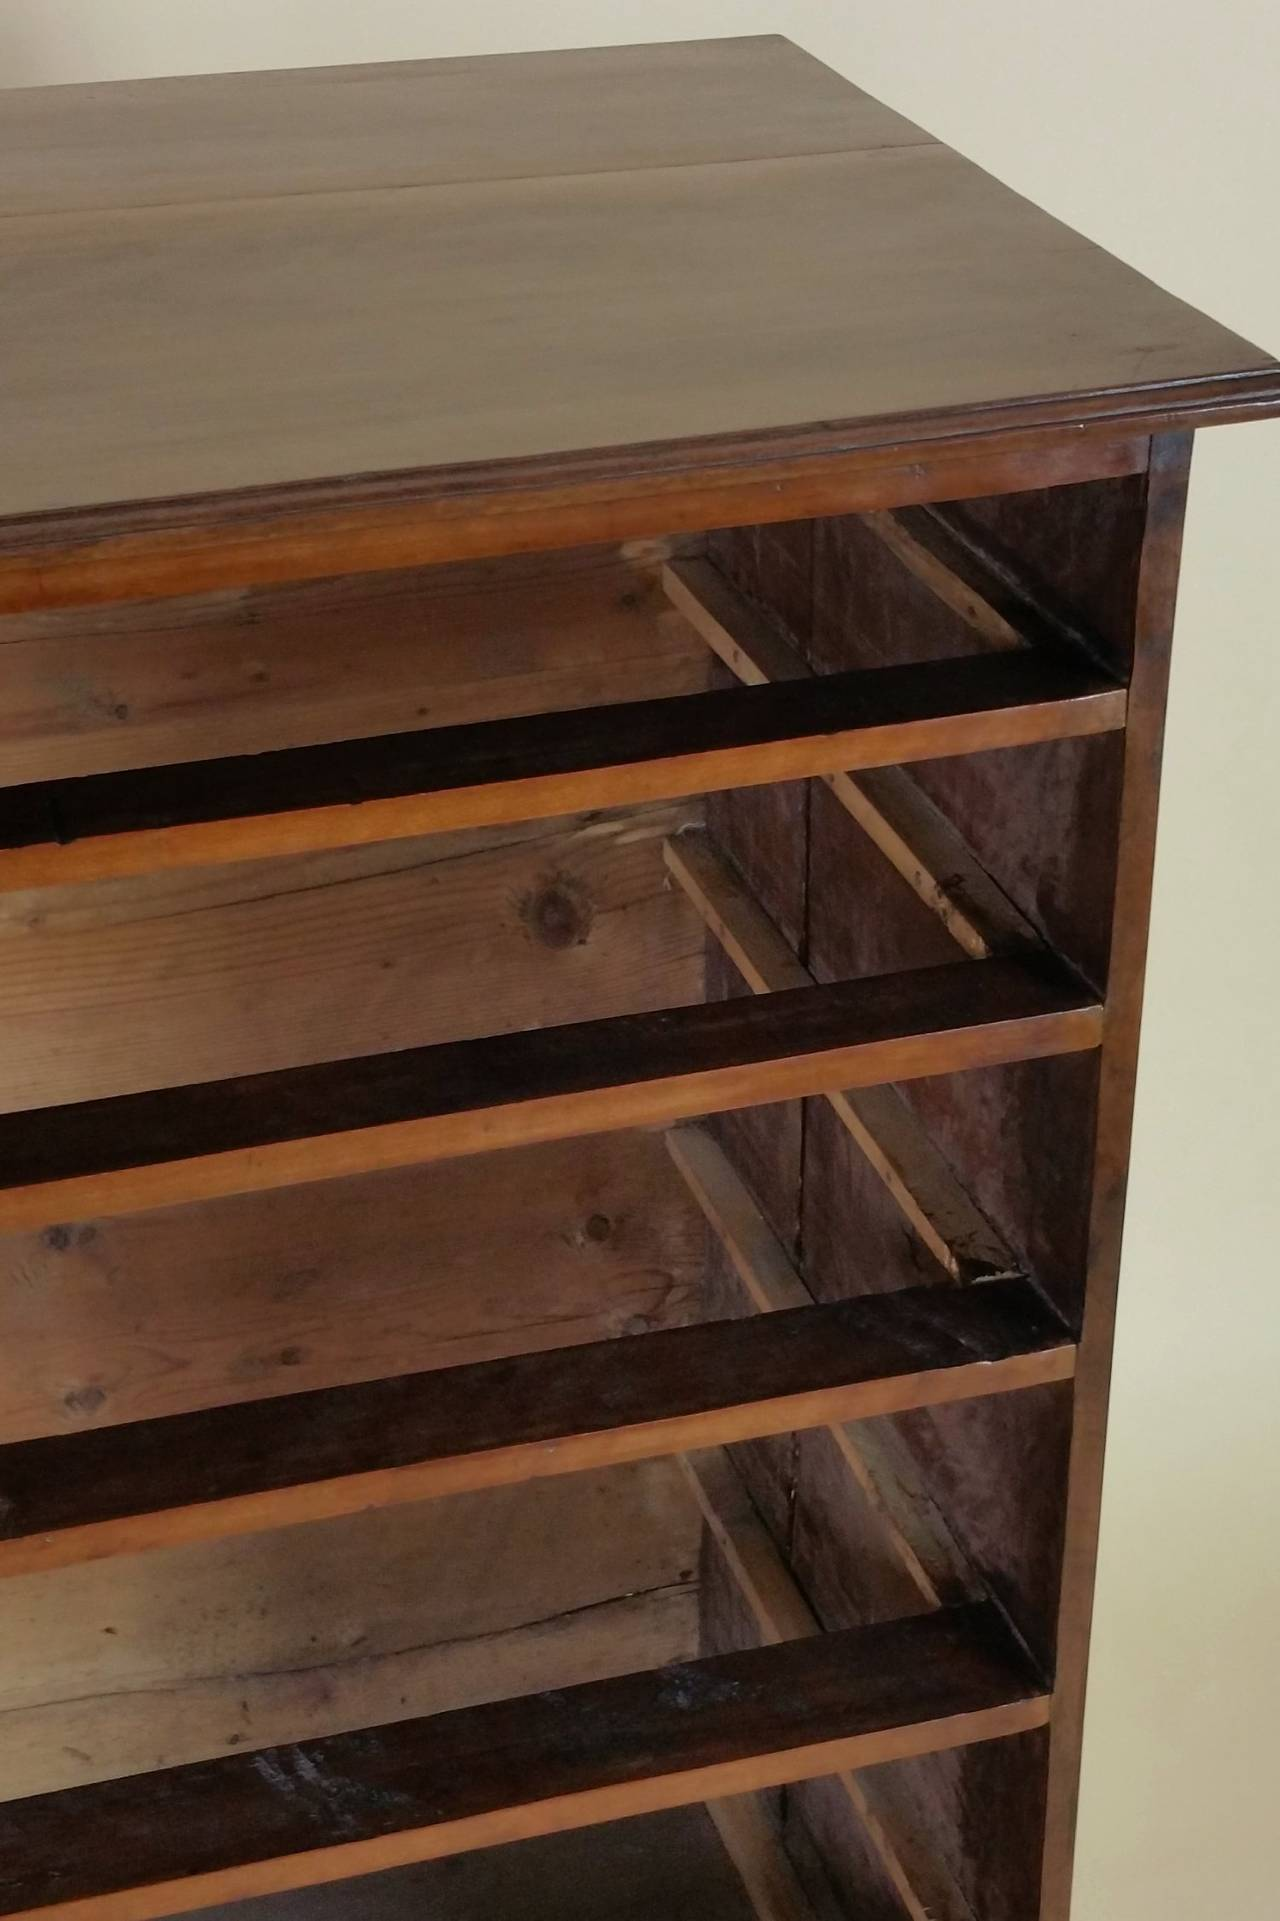 #69442C  / Case Pieces And Storage Cabinets / Commodes And Chests Of Drawers with 1280x1921 px of Best Chest Of Drawers Solid Wood 19211280 image @ avoidforclosure.info